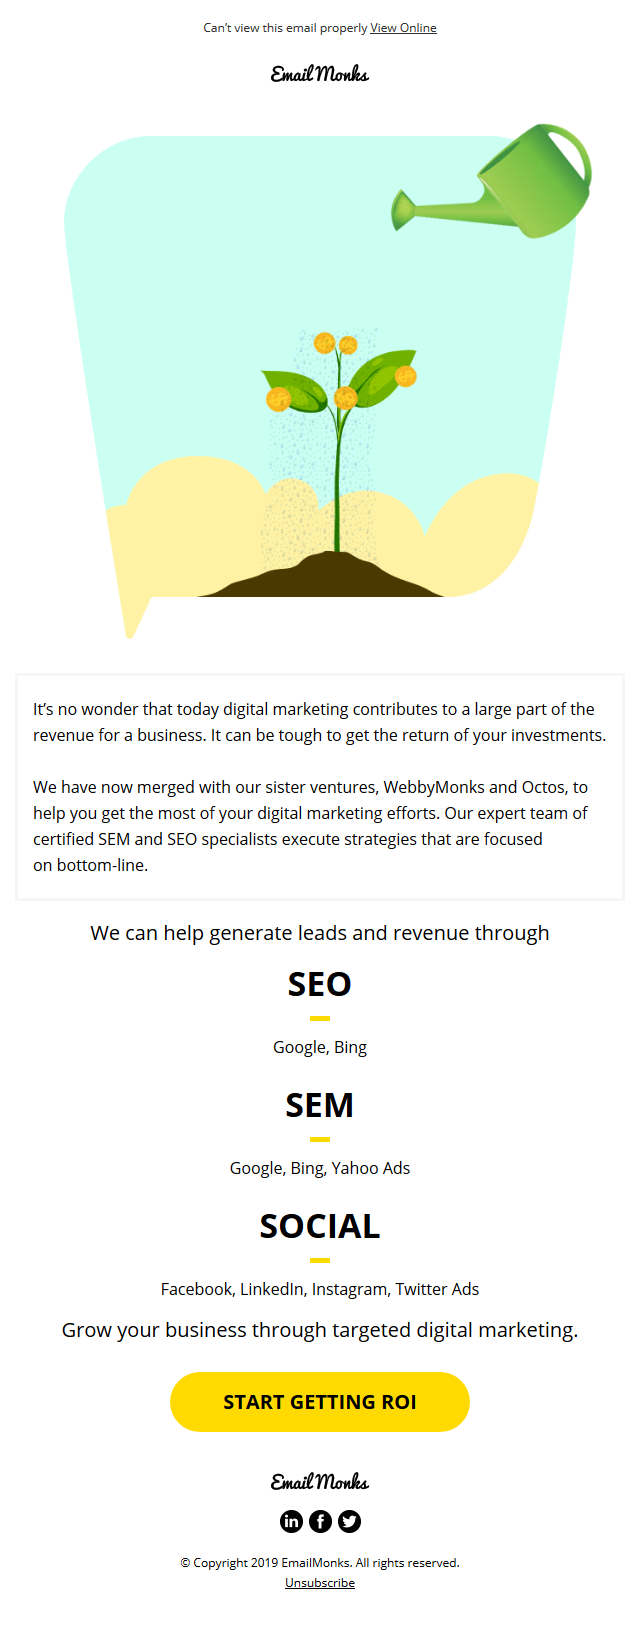 Invest in targeted digital marketing